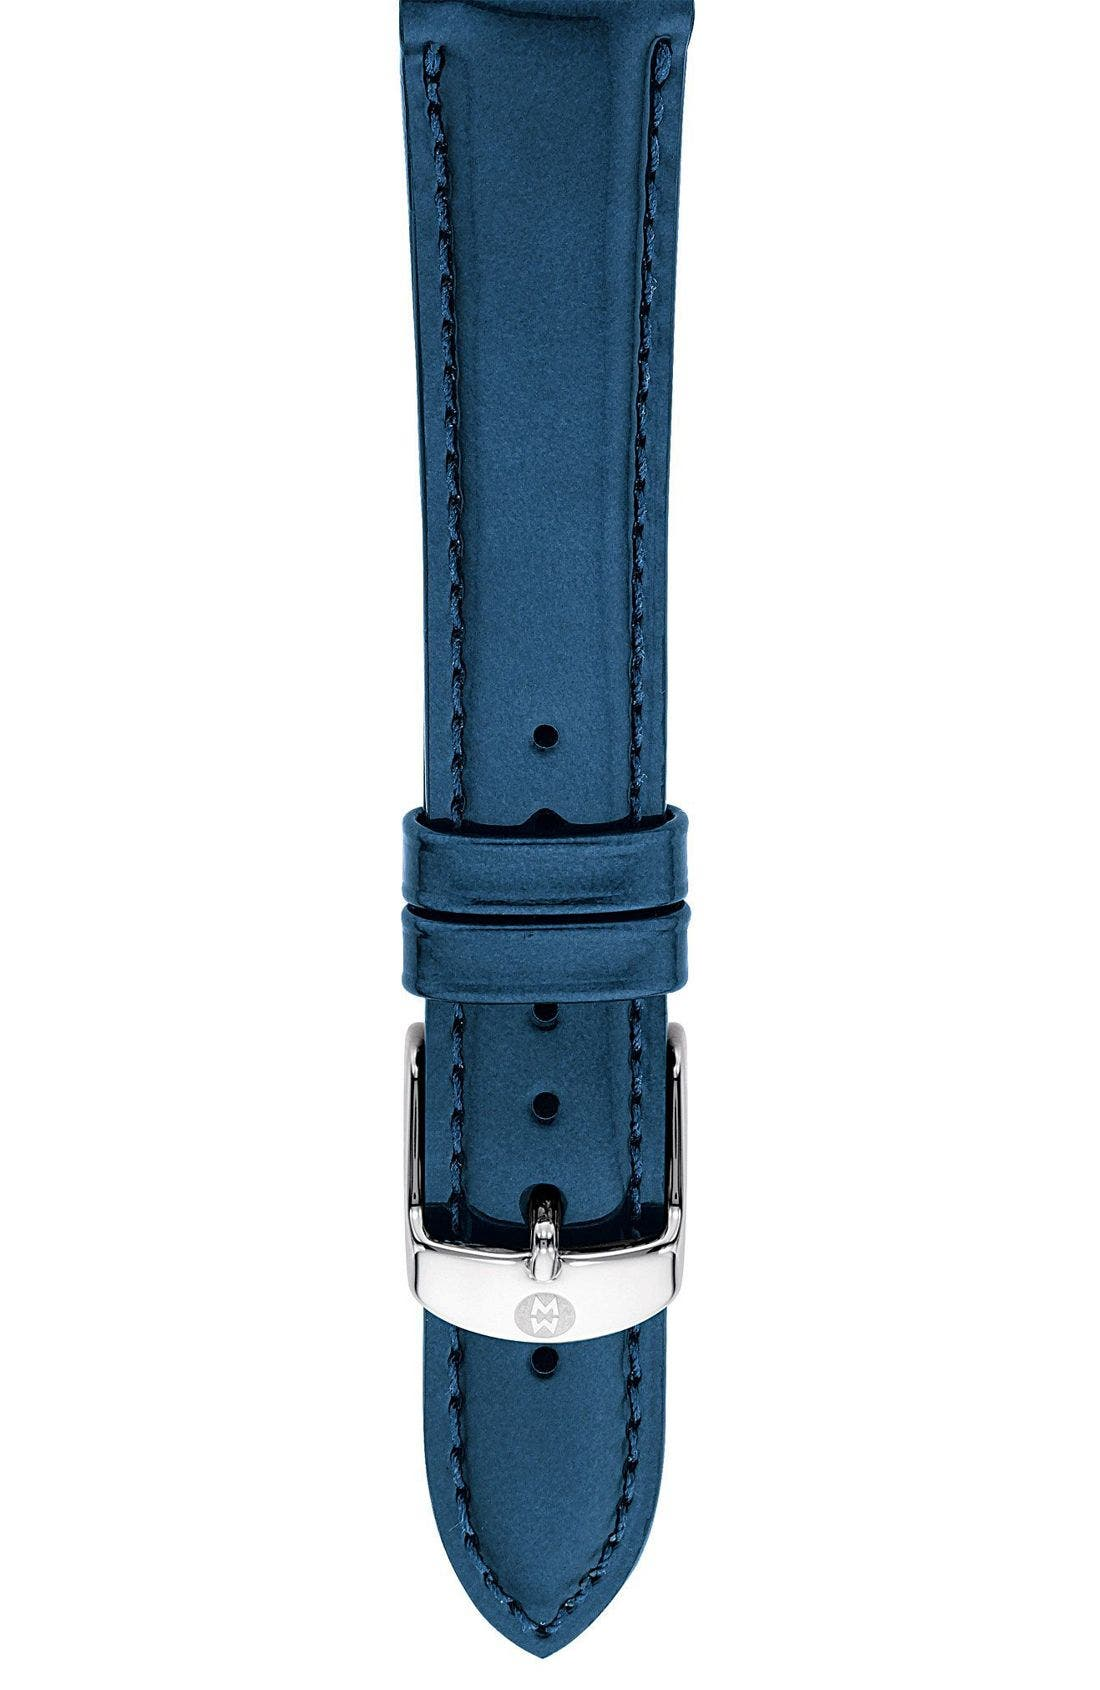 16mm Patent Leather Watch Strap,                             Main thumbnail 1, color,                             400